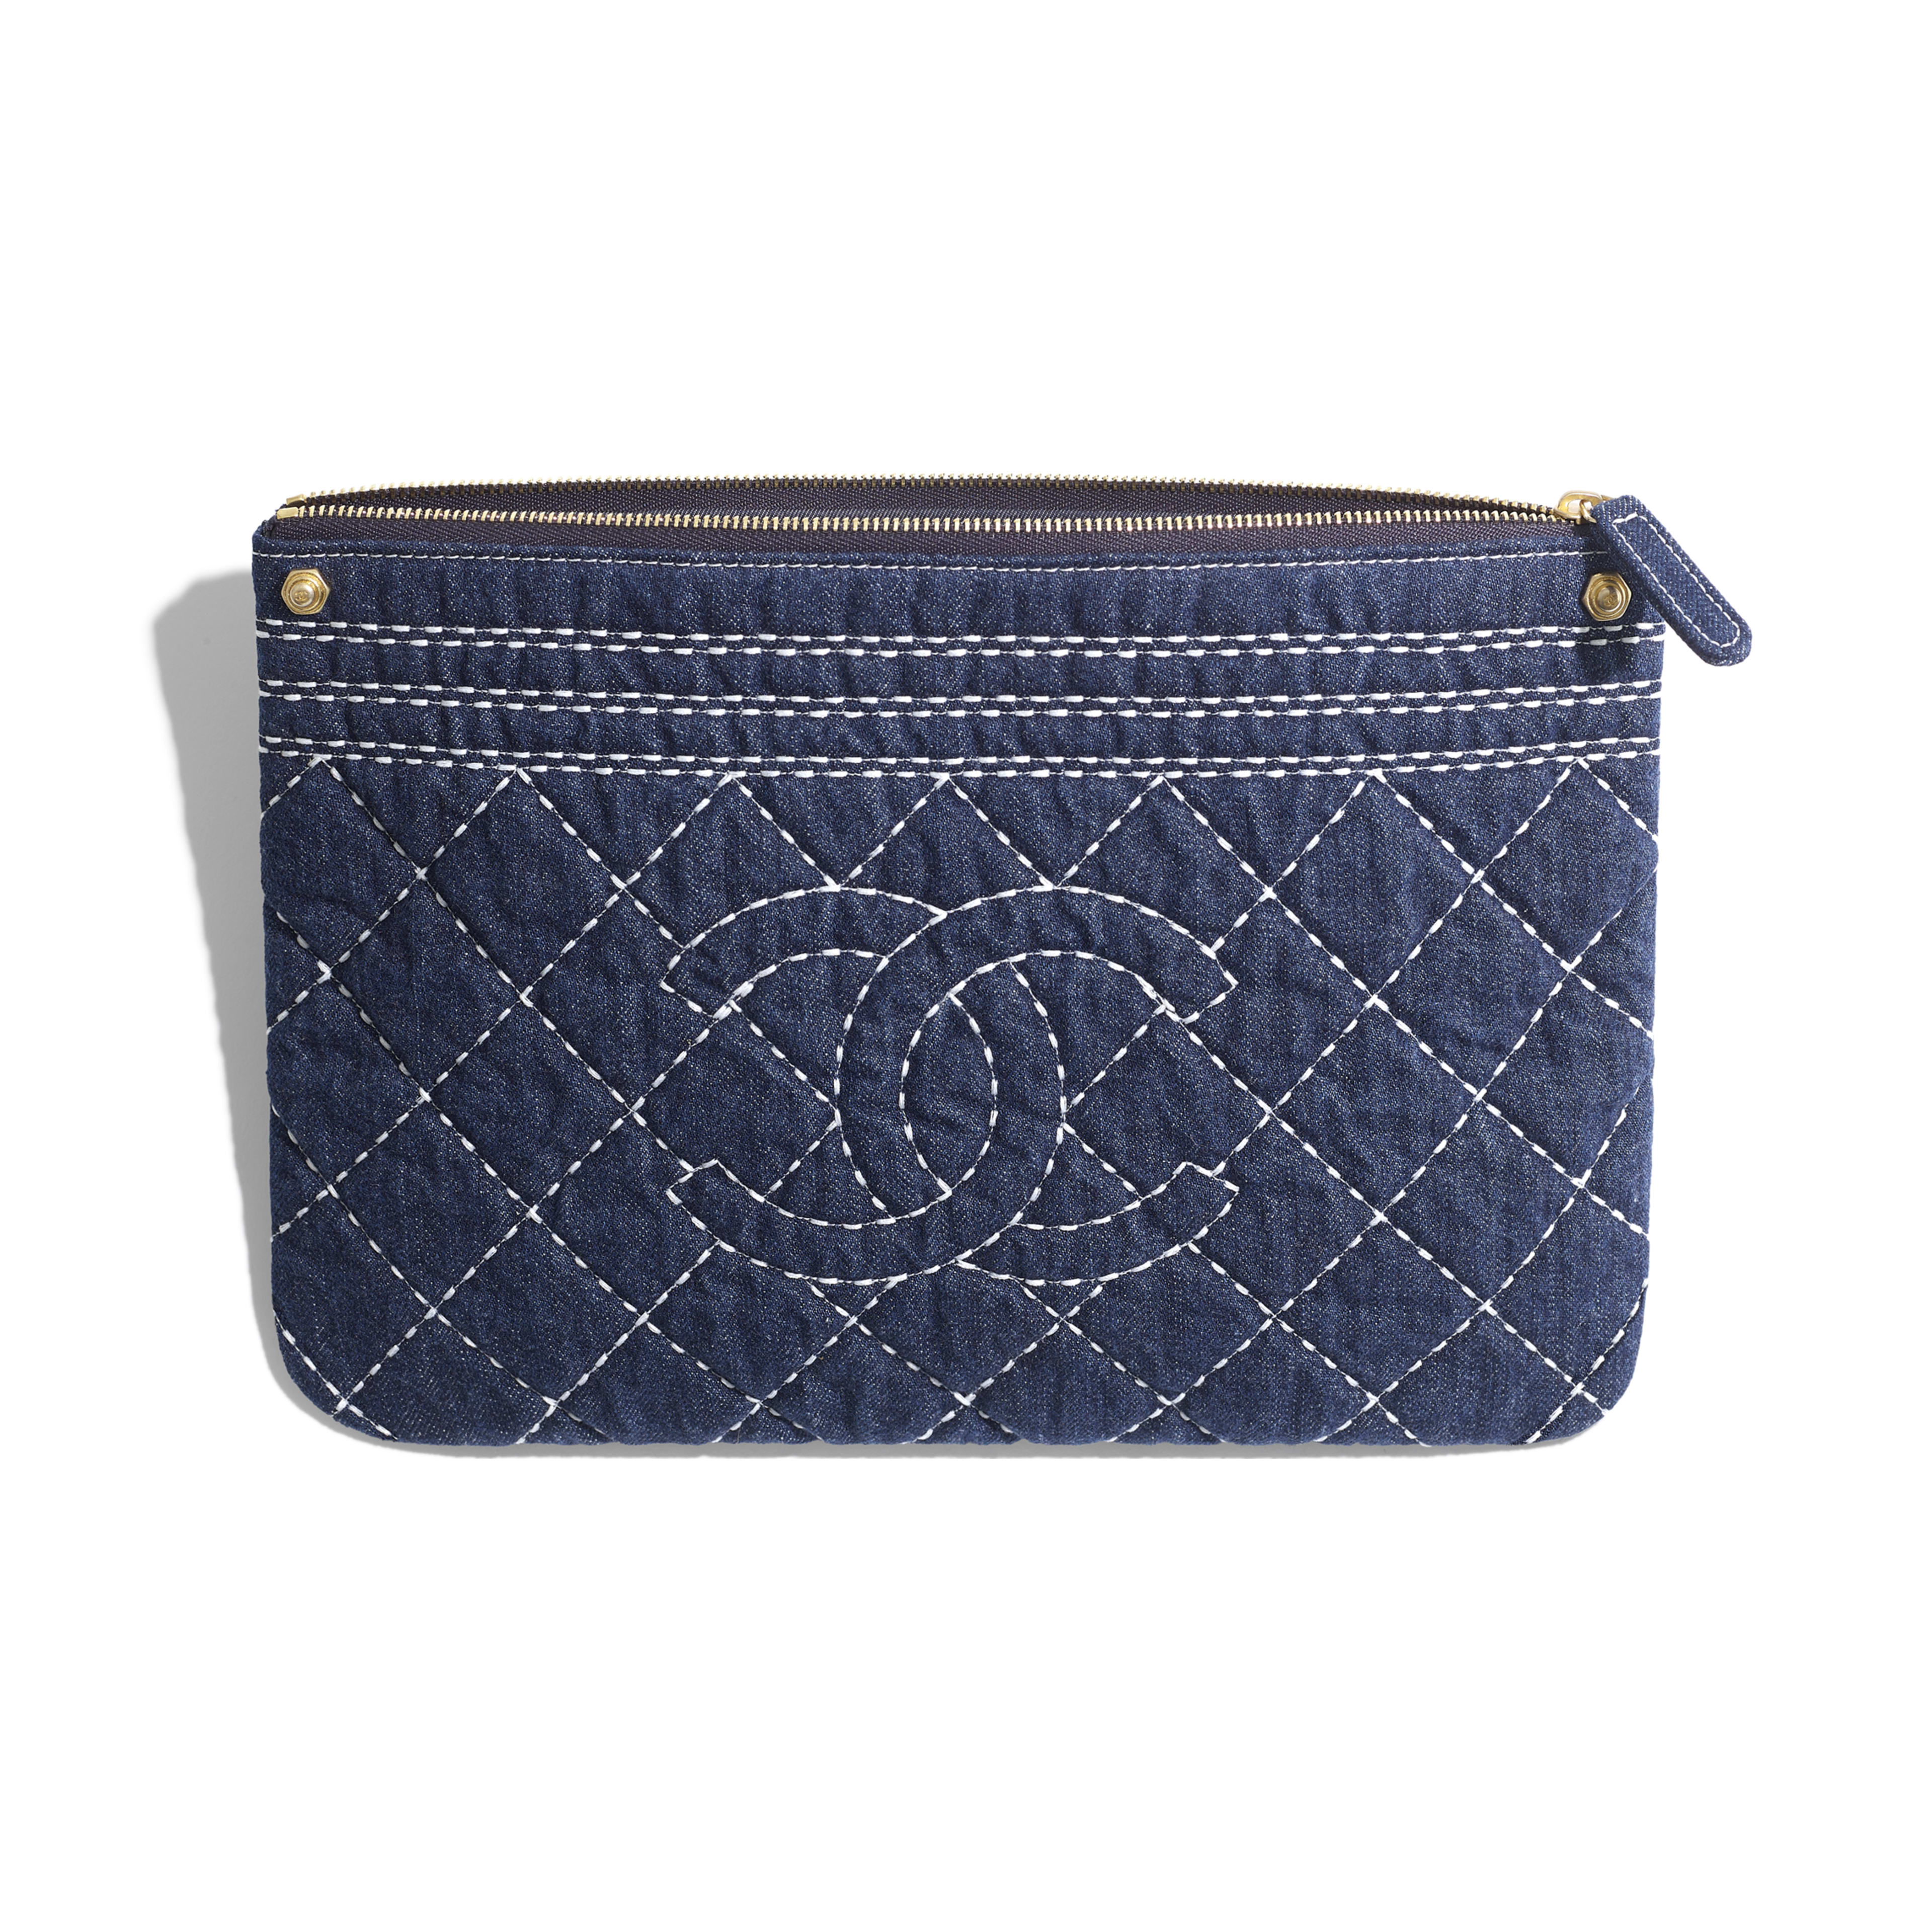 Pouch - Blue - Denim & Gold Metal - Other view - see full sized version